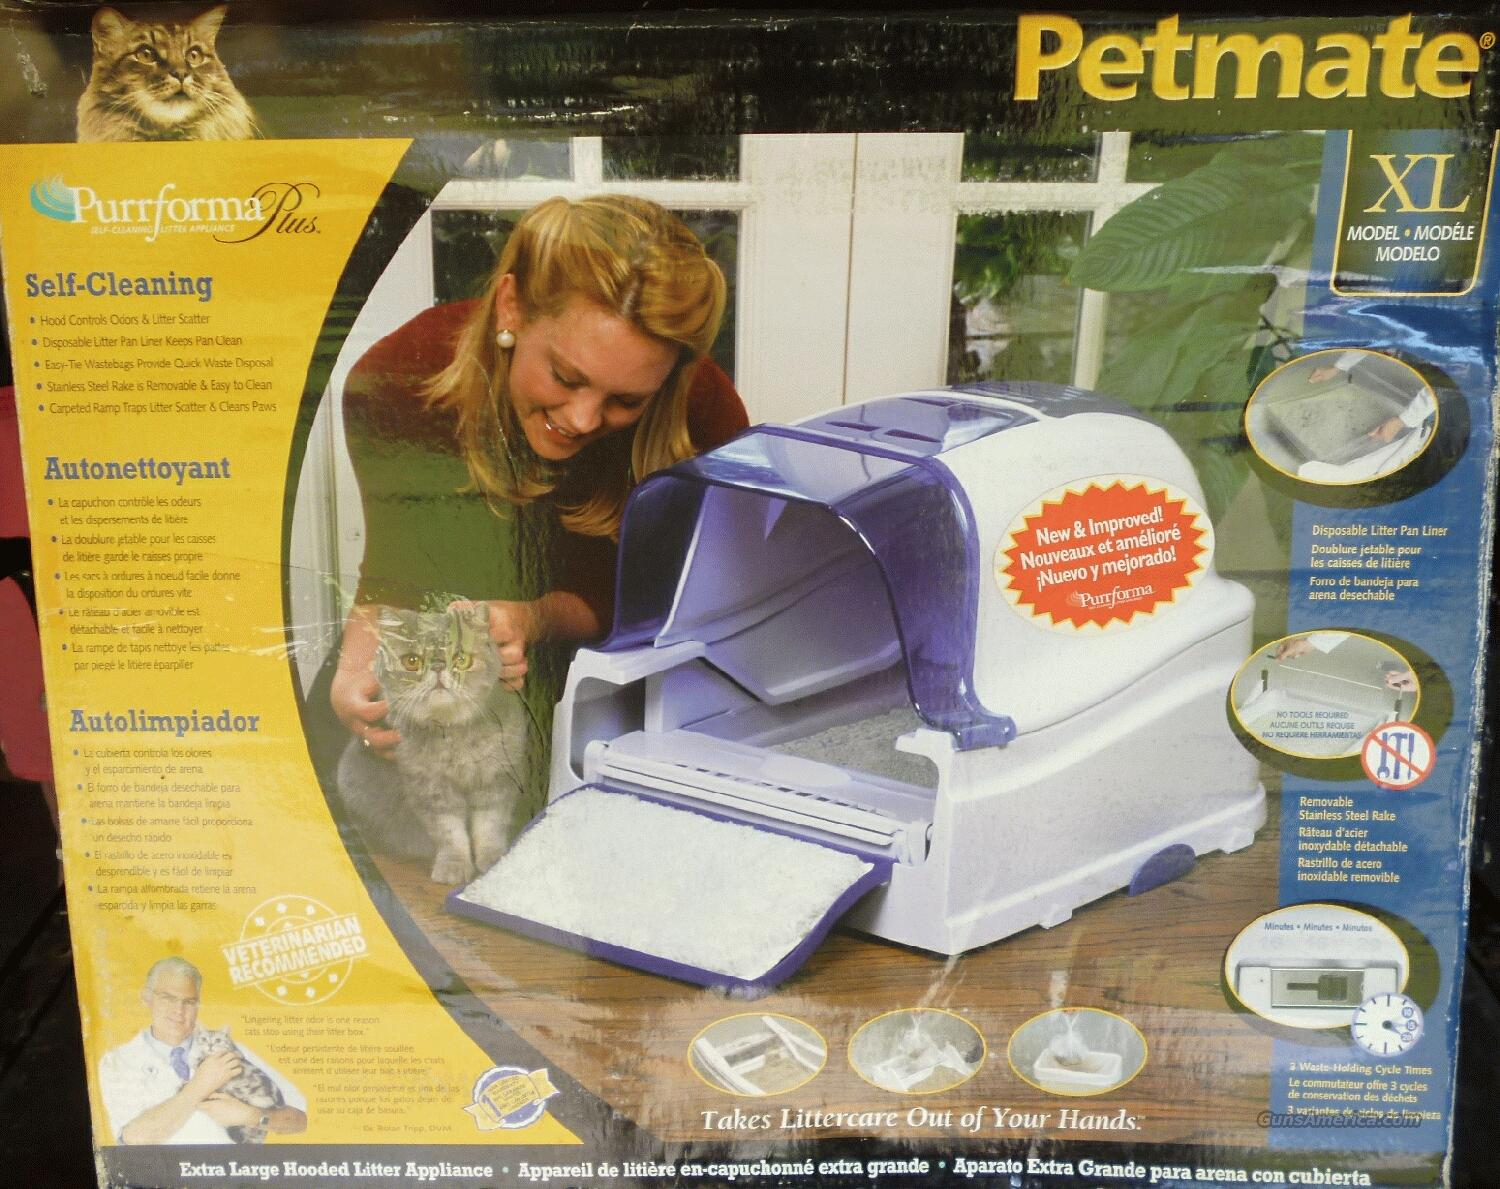 PETMATE PURRFORMA PLUS XL SELF-CLEANING LITTER BOX  Non-Guns > Electronics